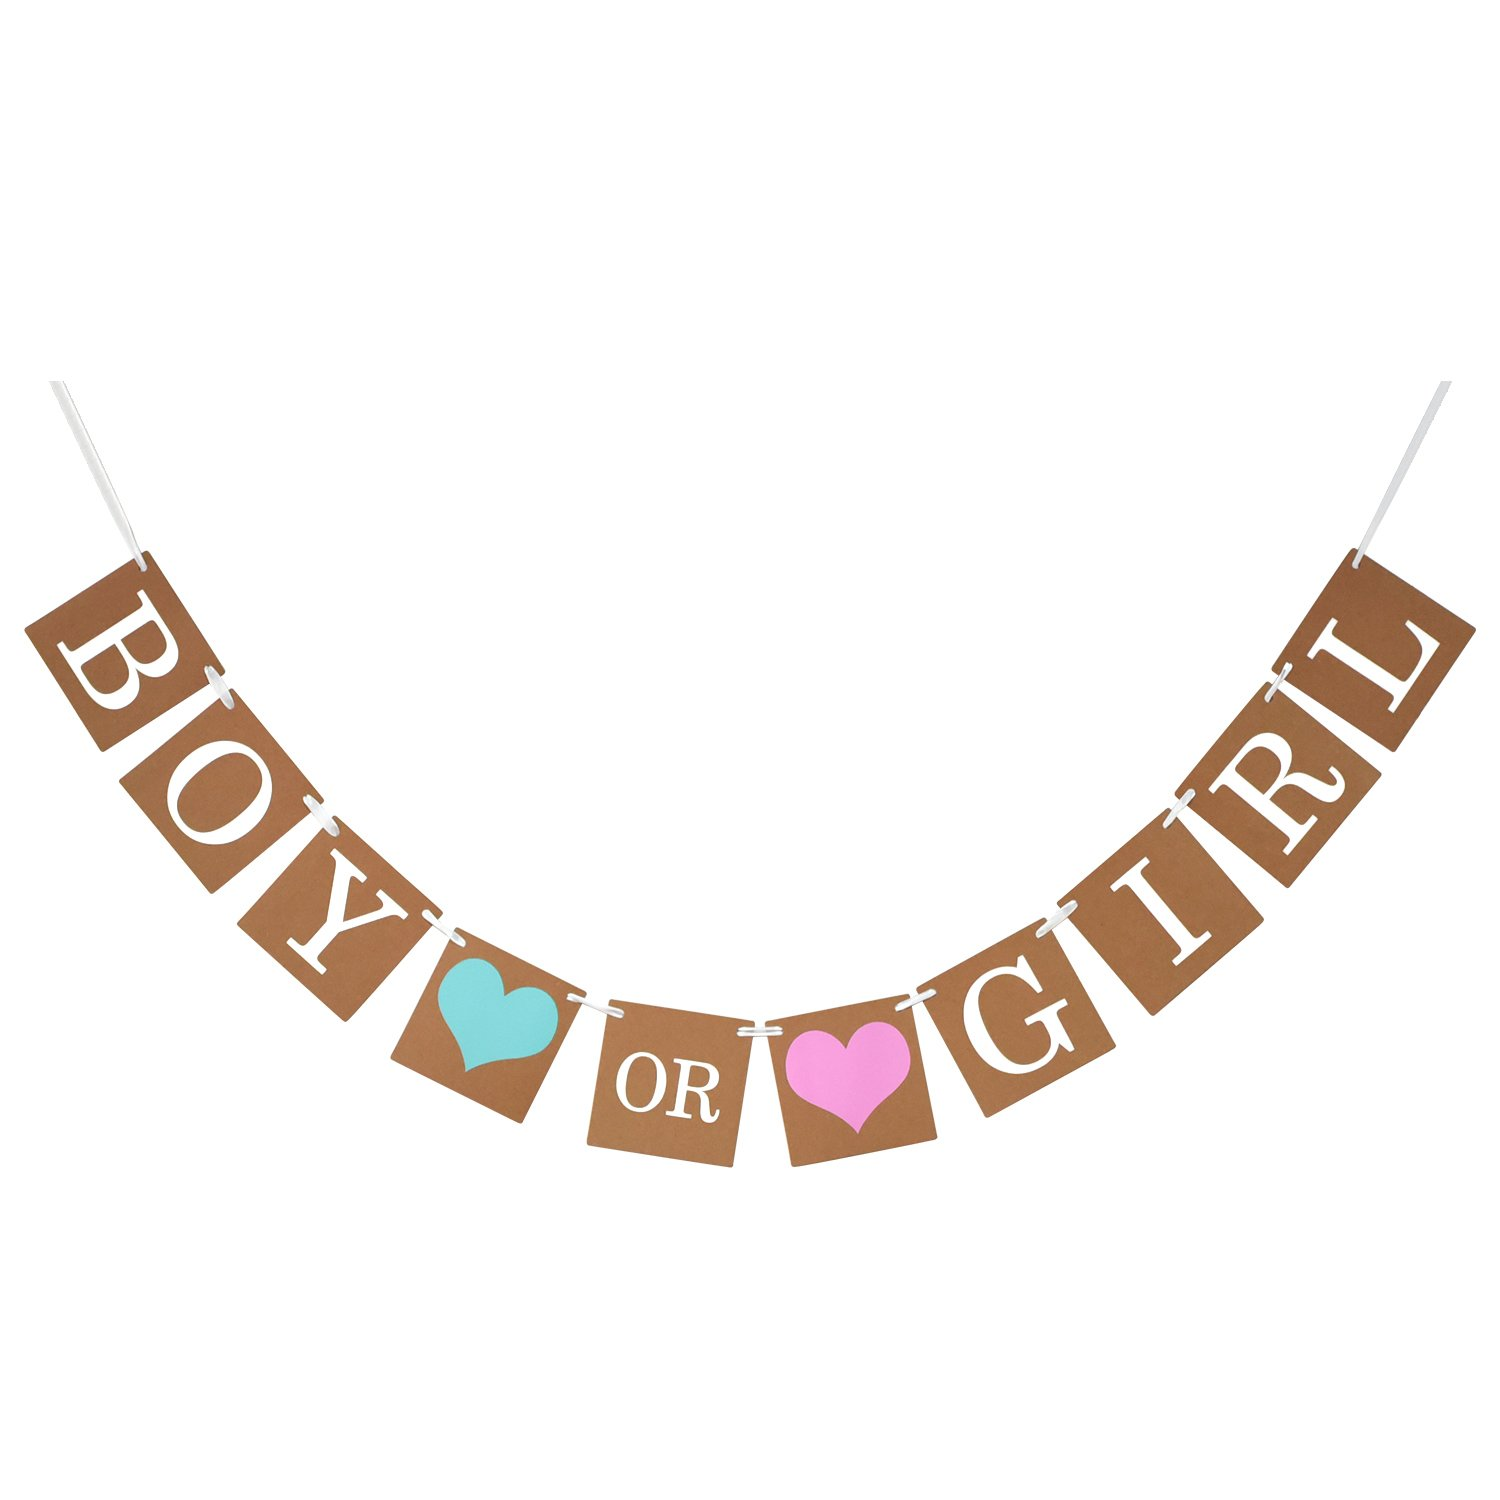 eBoot Baby Shower Decorations Boy or Girl Banner Gender Reveal Bunting Flag Baby Gender Show Party Favors Pregnancy Announcement